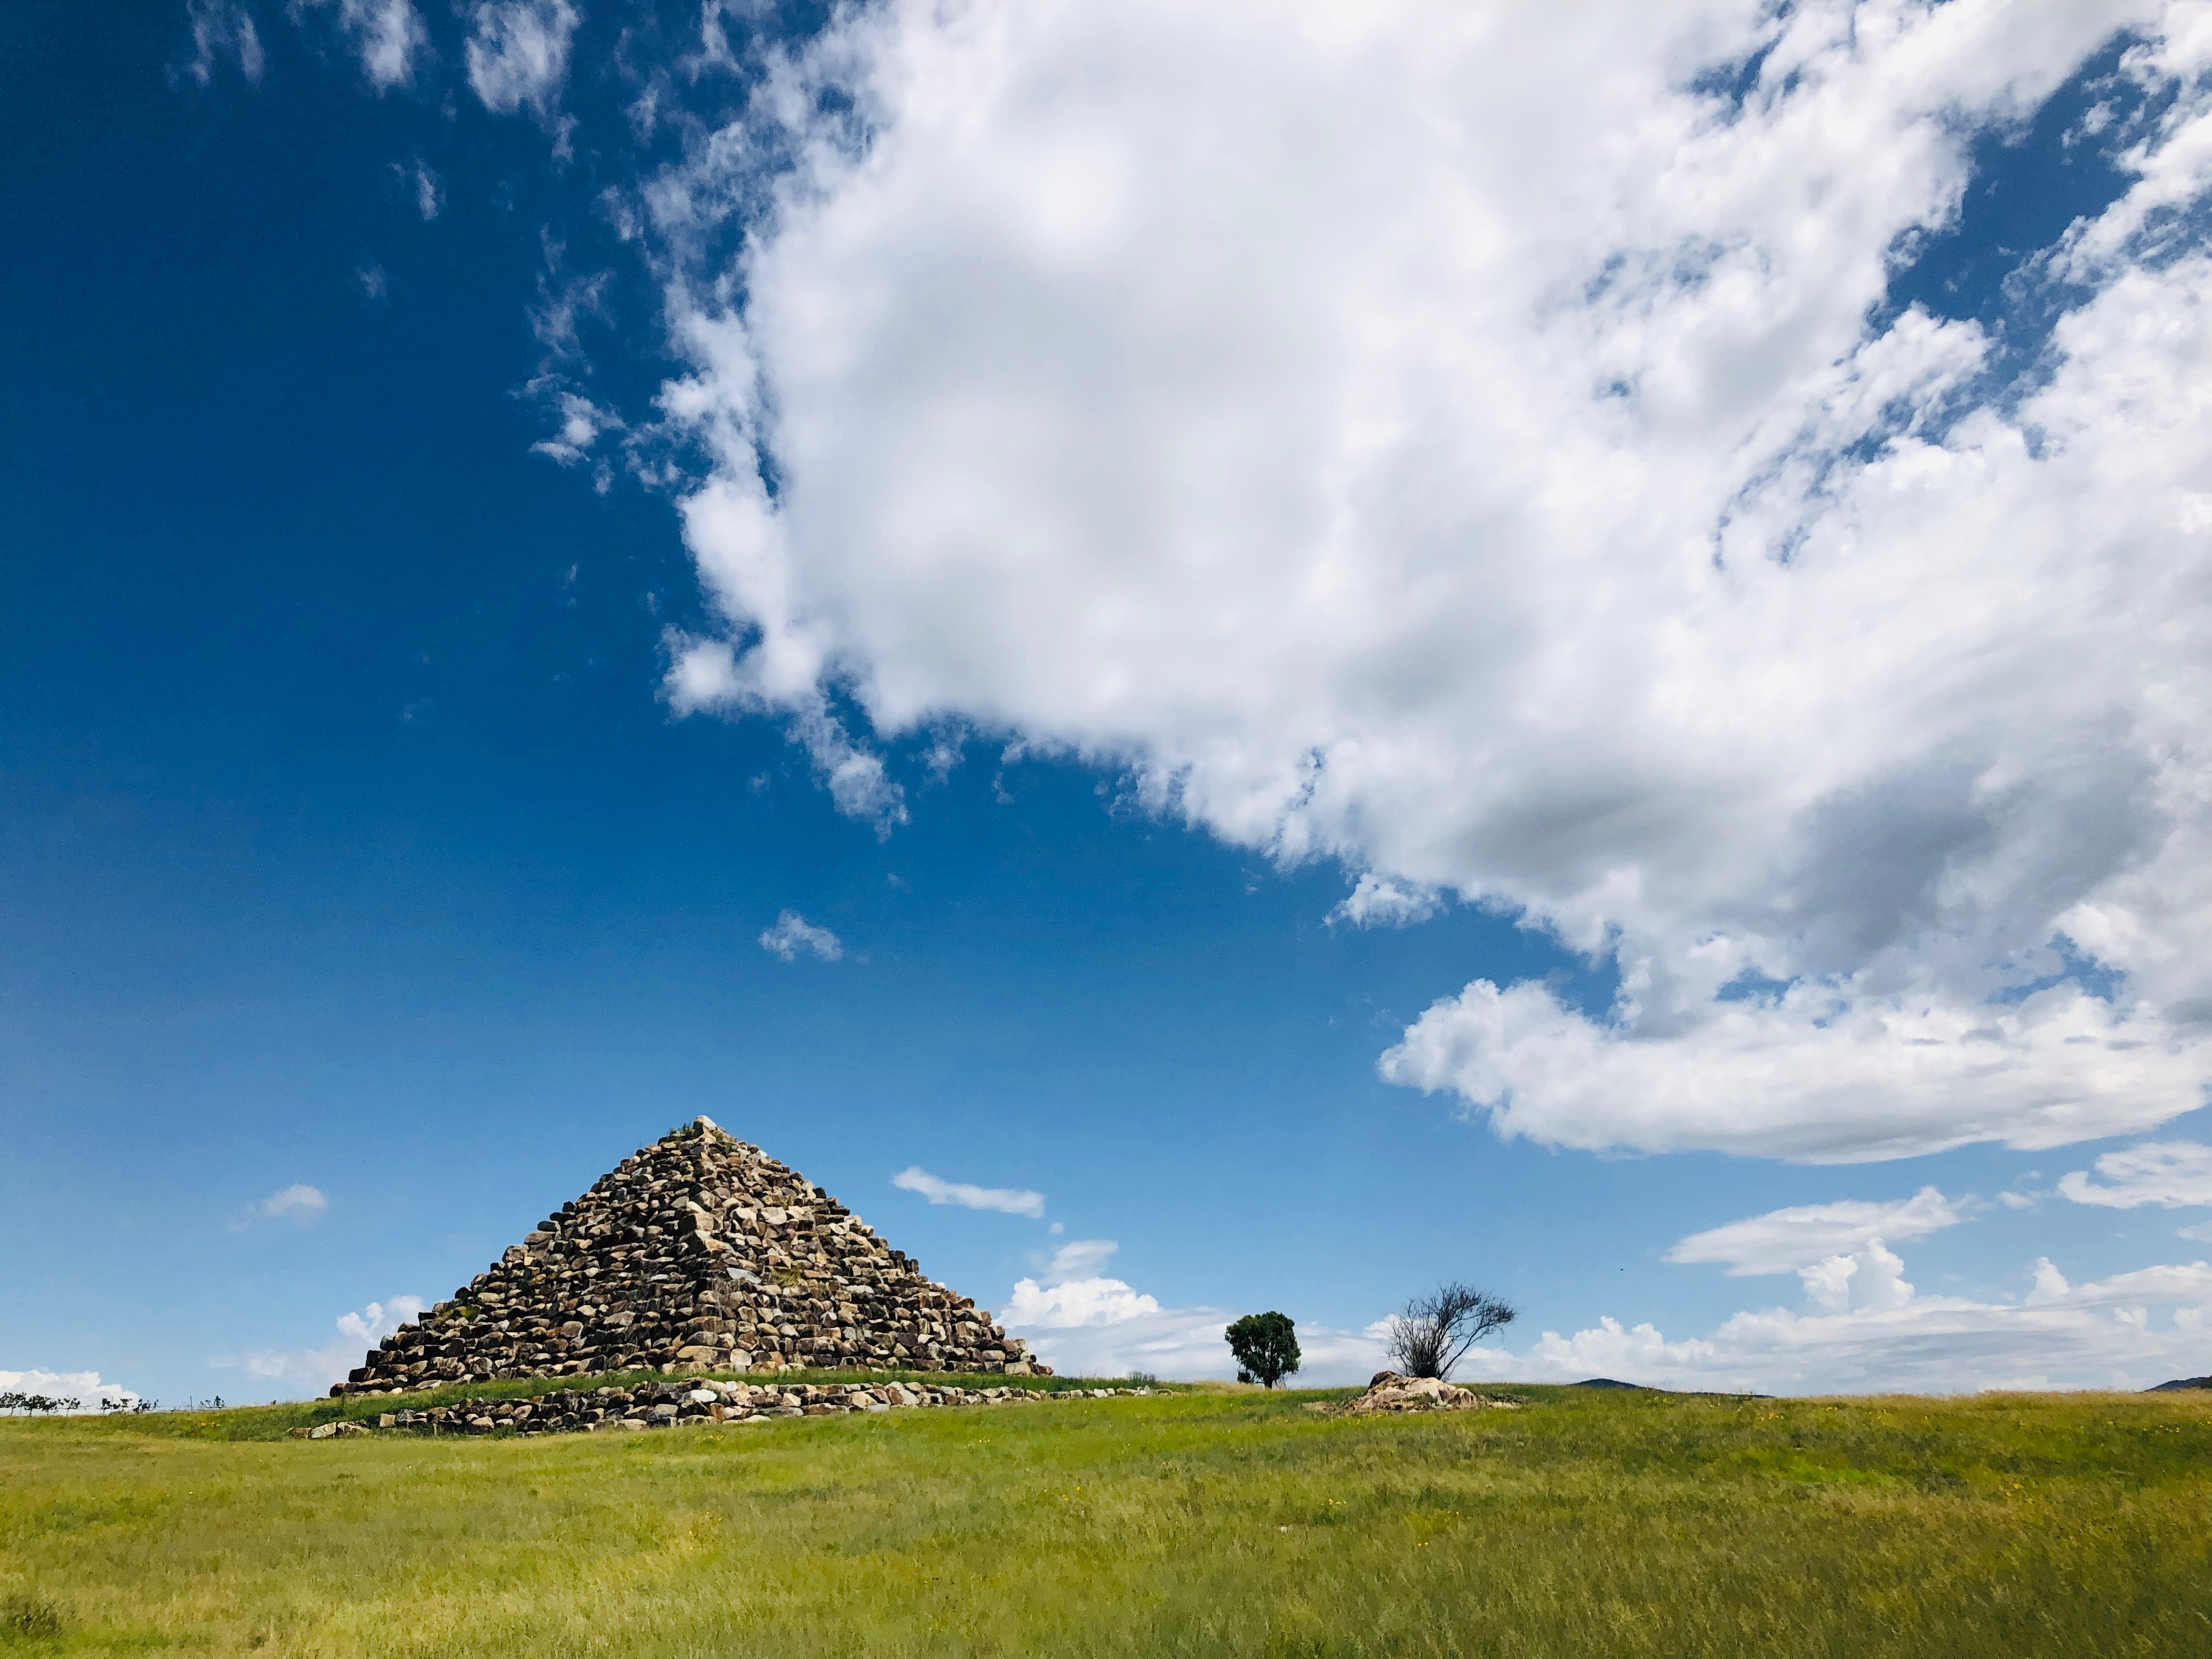 The Ballandean Pyramid